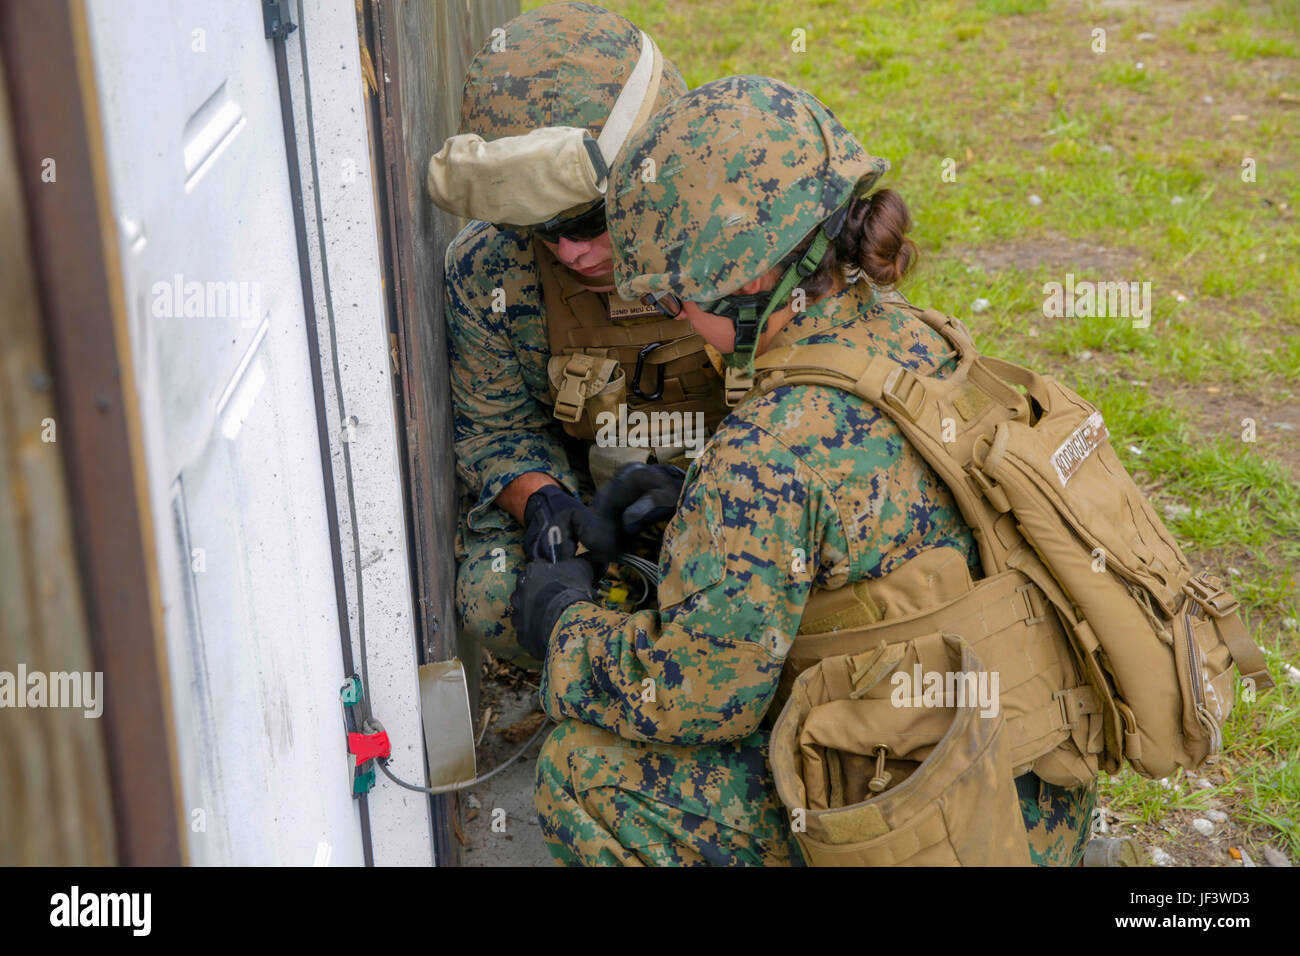 Marines prepare an Uli knot charge on a door as a part of urban breaching training at C& Lejeune N.C. May 24 2017. The Marines employed demolitions in ... & Marines prepare an Uli knot charge on a door as a part of urban ...